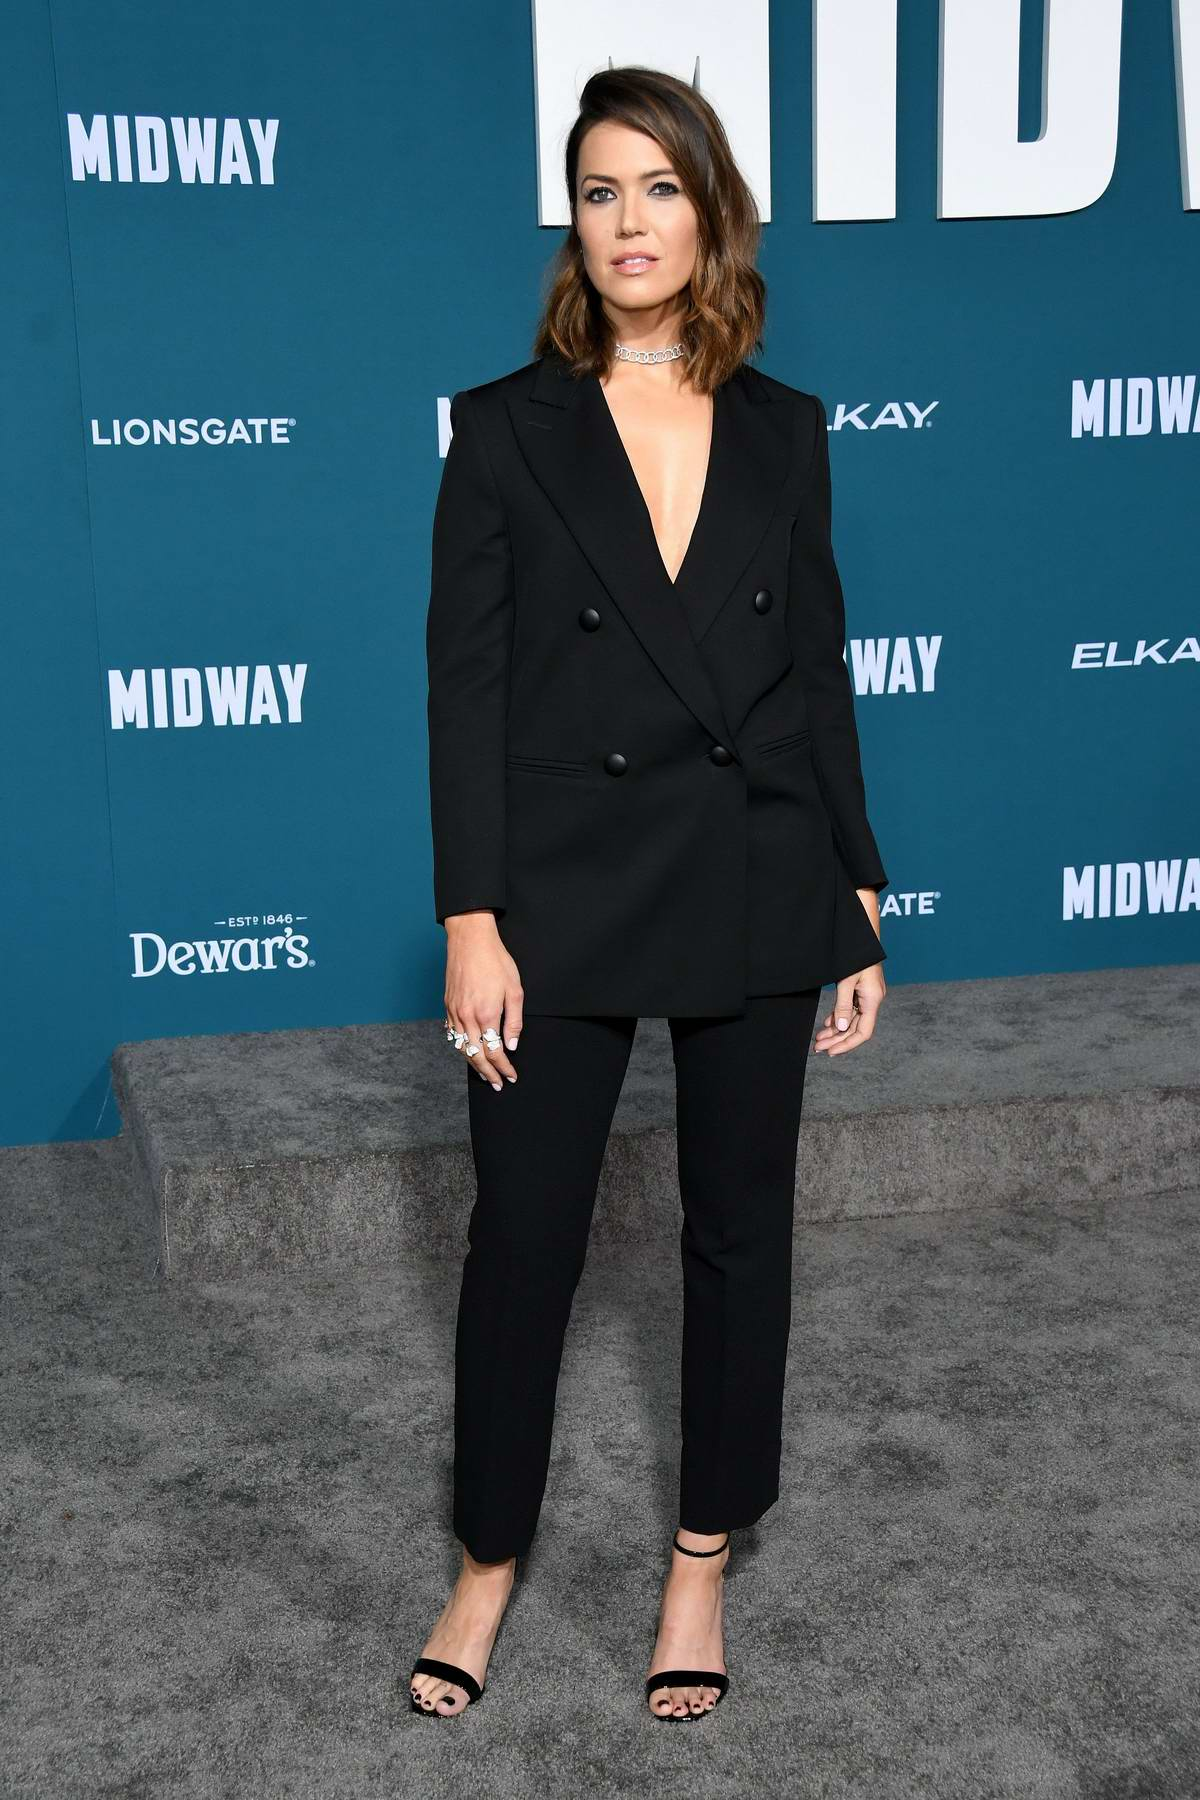 Mandy Moore attends the Premiere of 'Midway' at Regency Village Theatre in Westwood, California